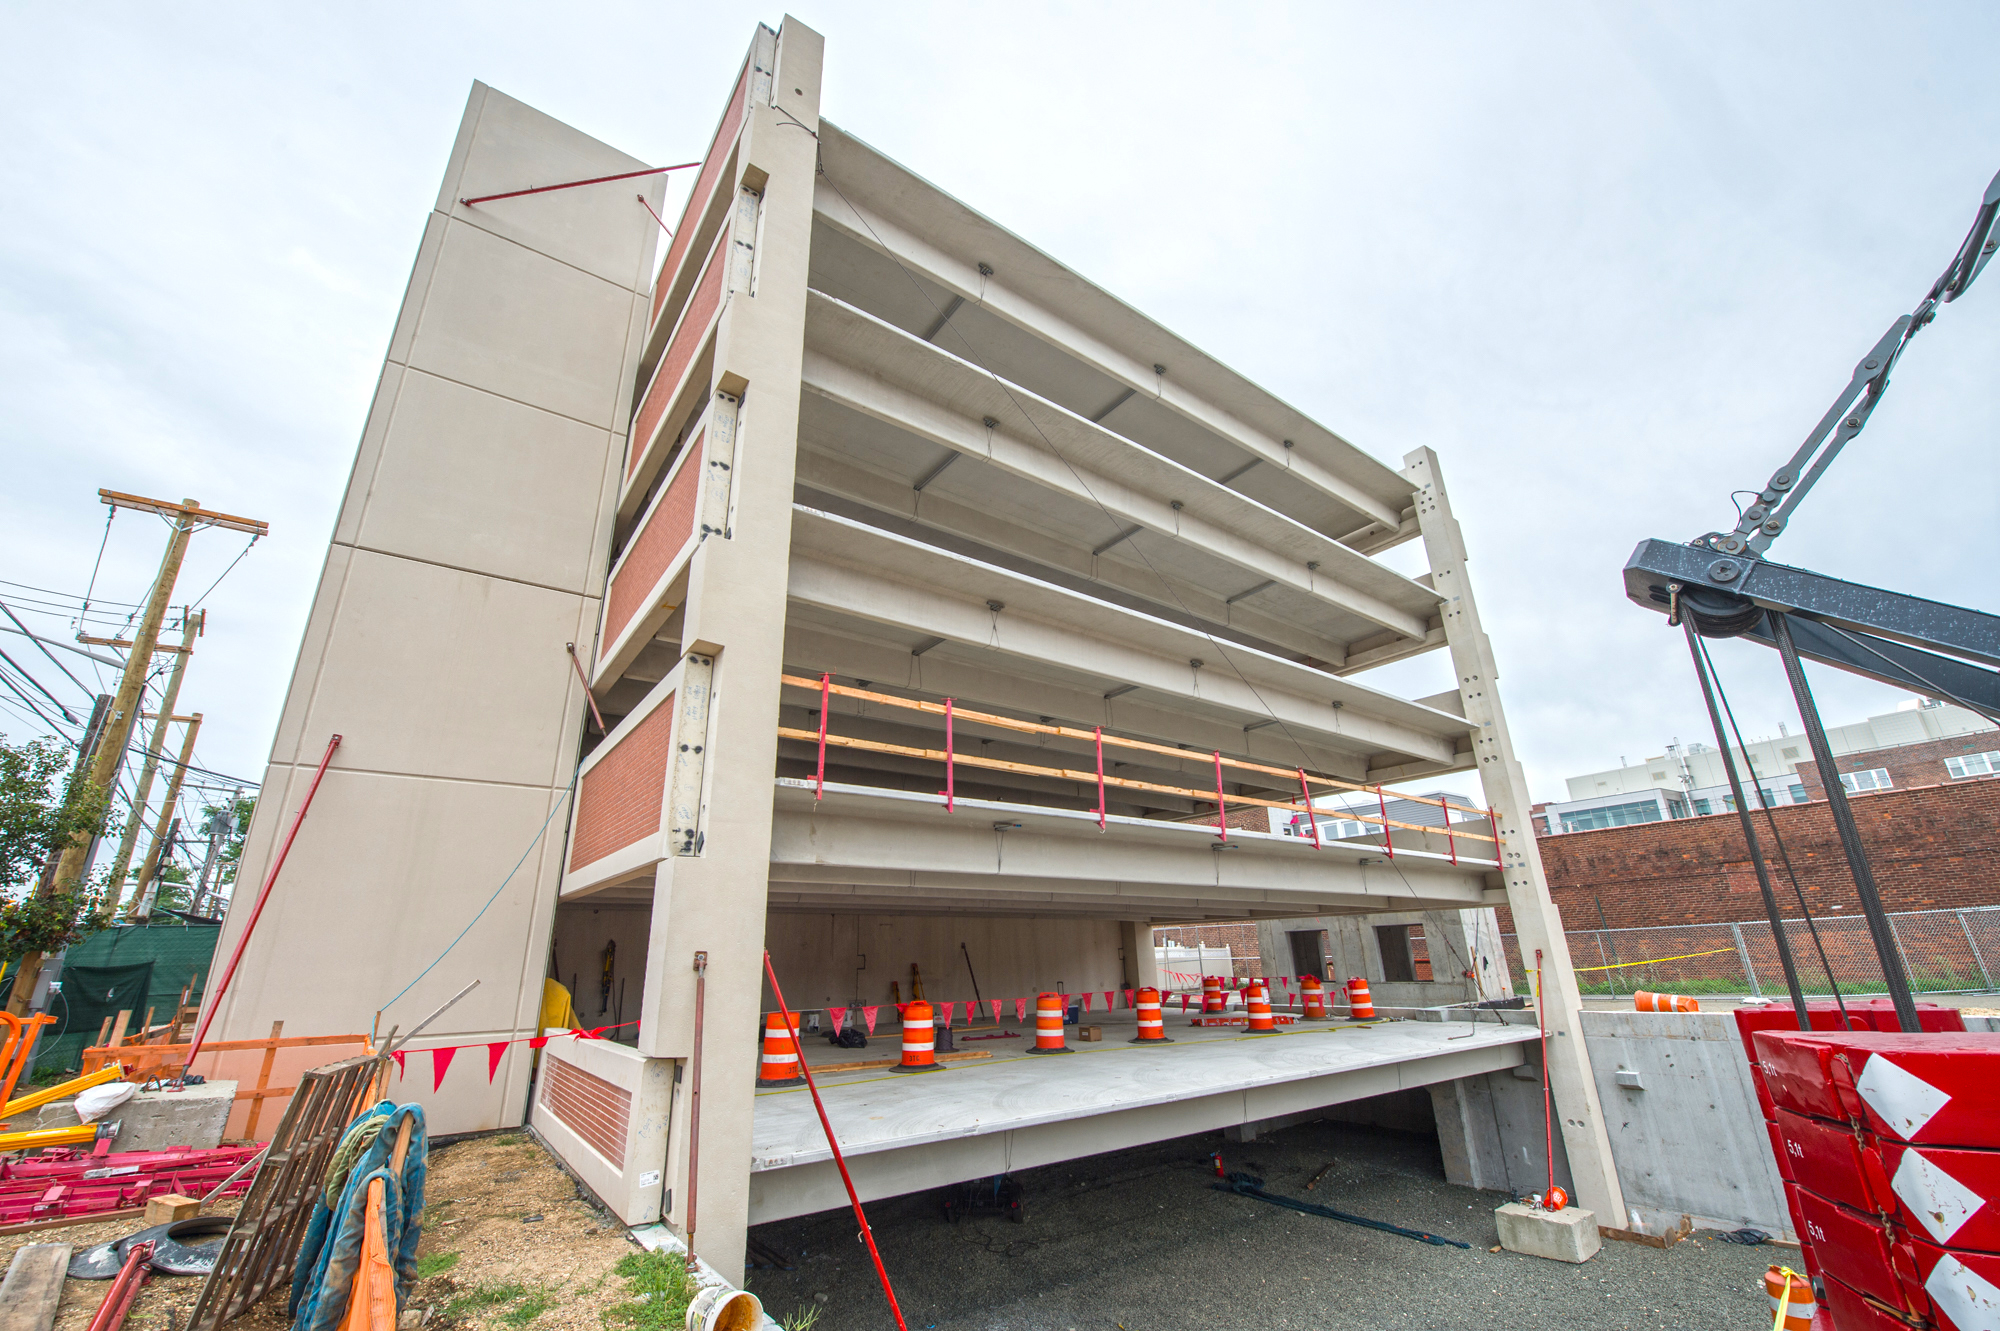 Mineola Harrison Parking Garage - 08-27-19